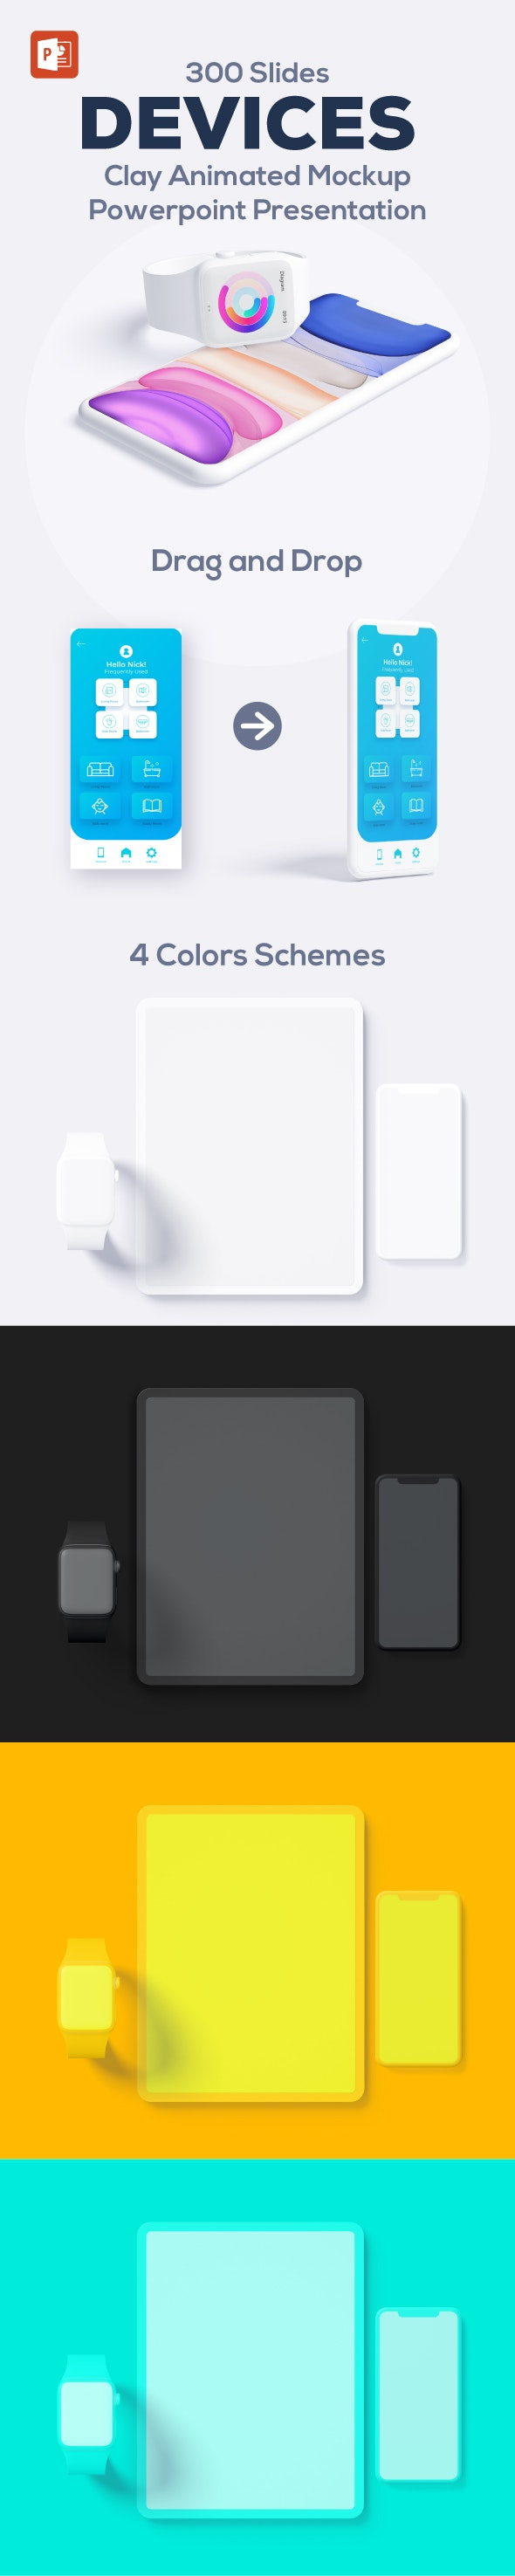 Animated Device Mockup PowerPoint Presentation Template - Business PowerPoint Templates